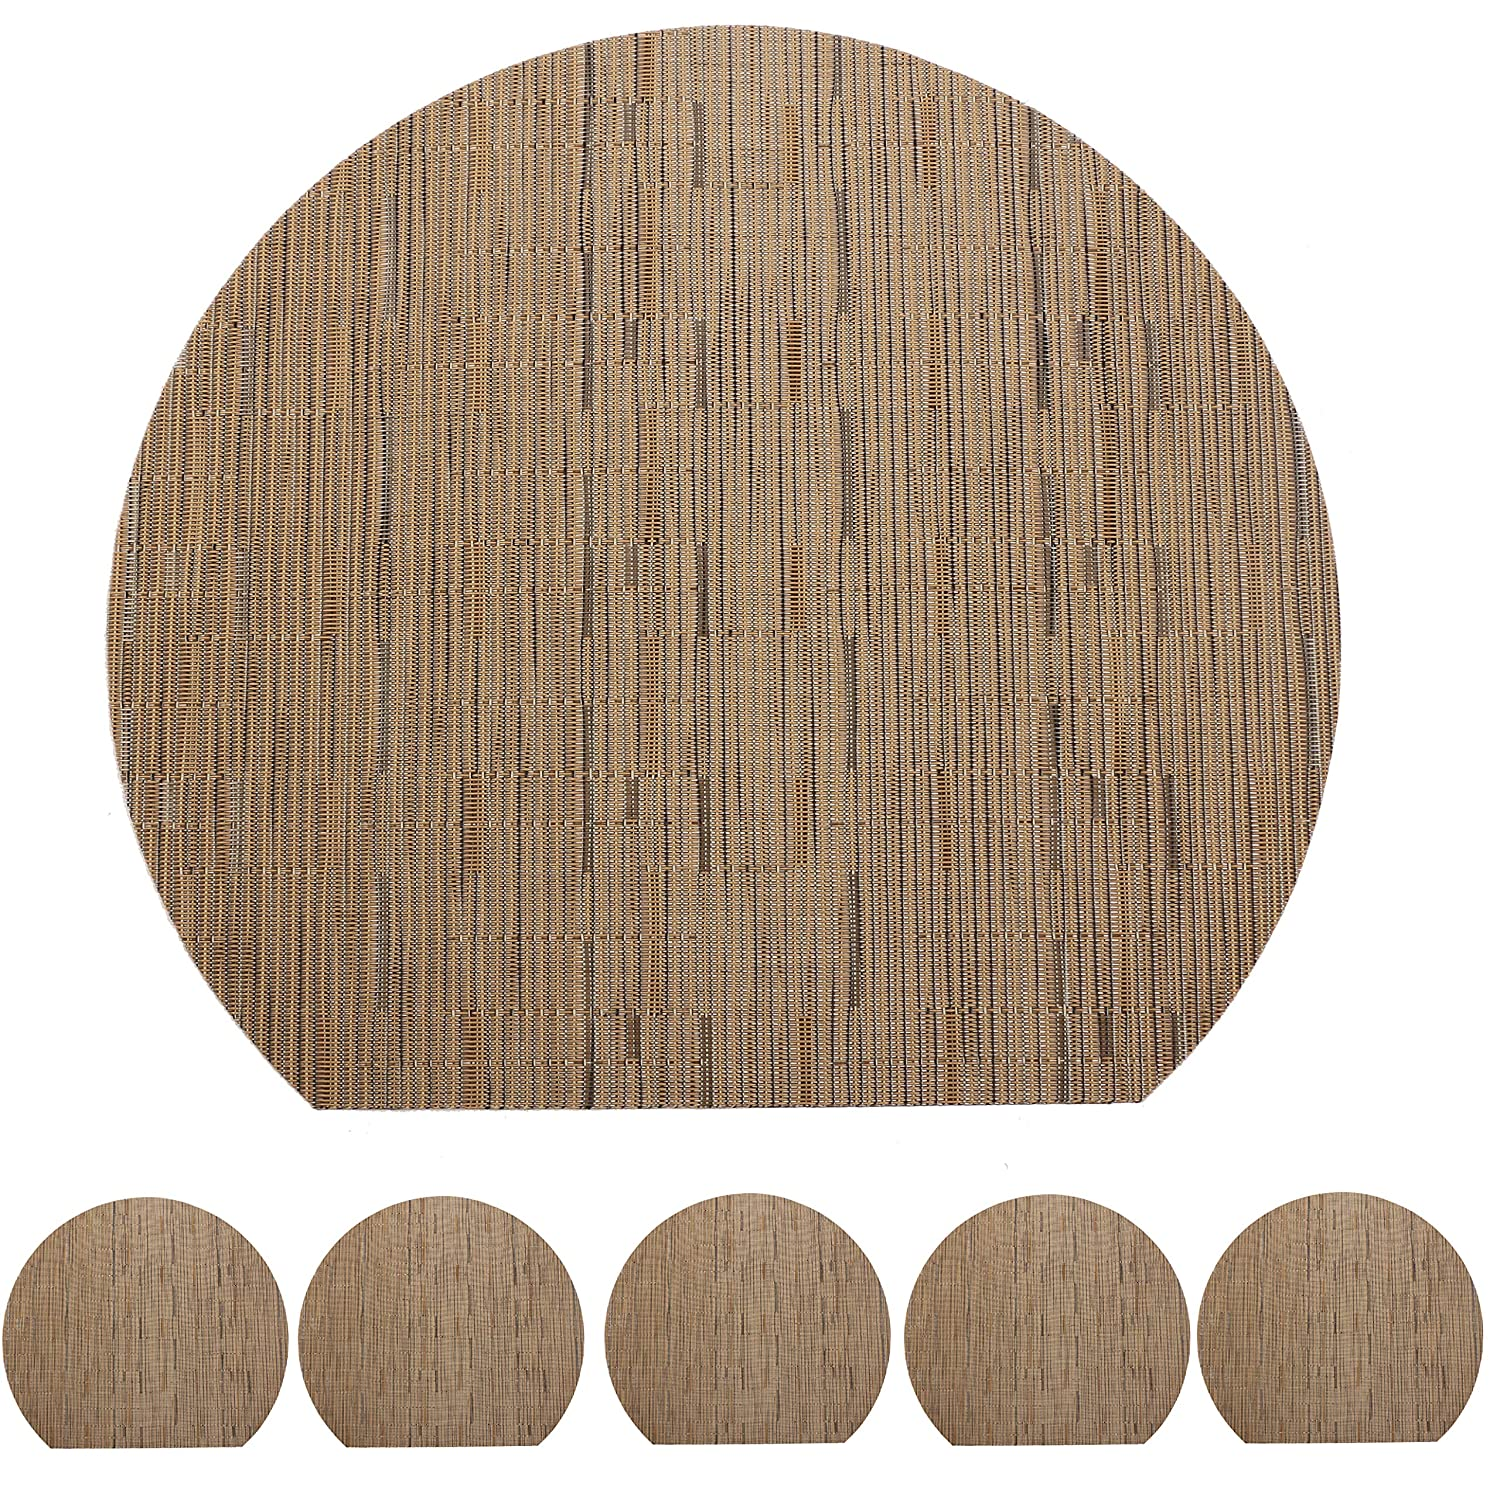 famibay Round Placemats for Round Table Set of 6 Wedge Kitchen Place Mats with 1 Round Piece Heat Insulation Stain-Resistant Vinyl Woven Place Mats Non-Slip Washable Table Mats Pack of 7 Brown